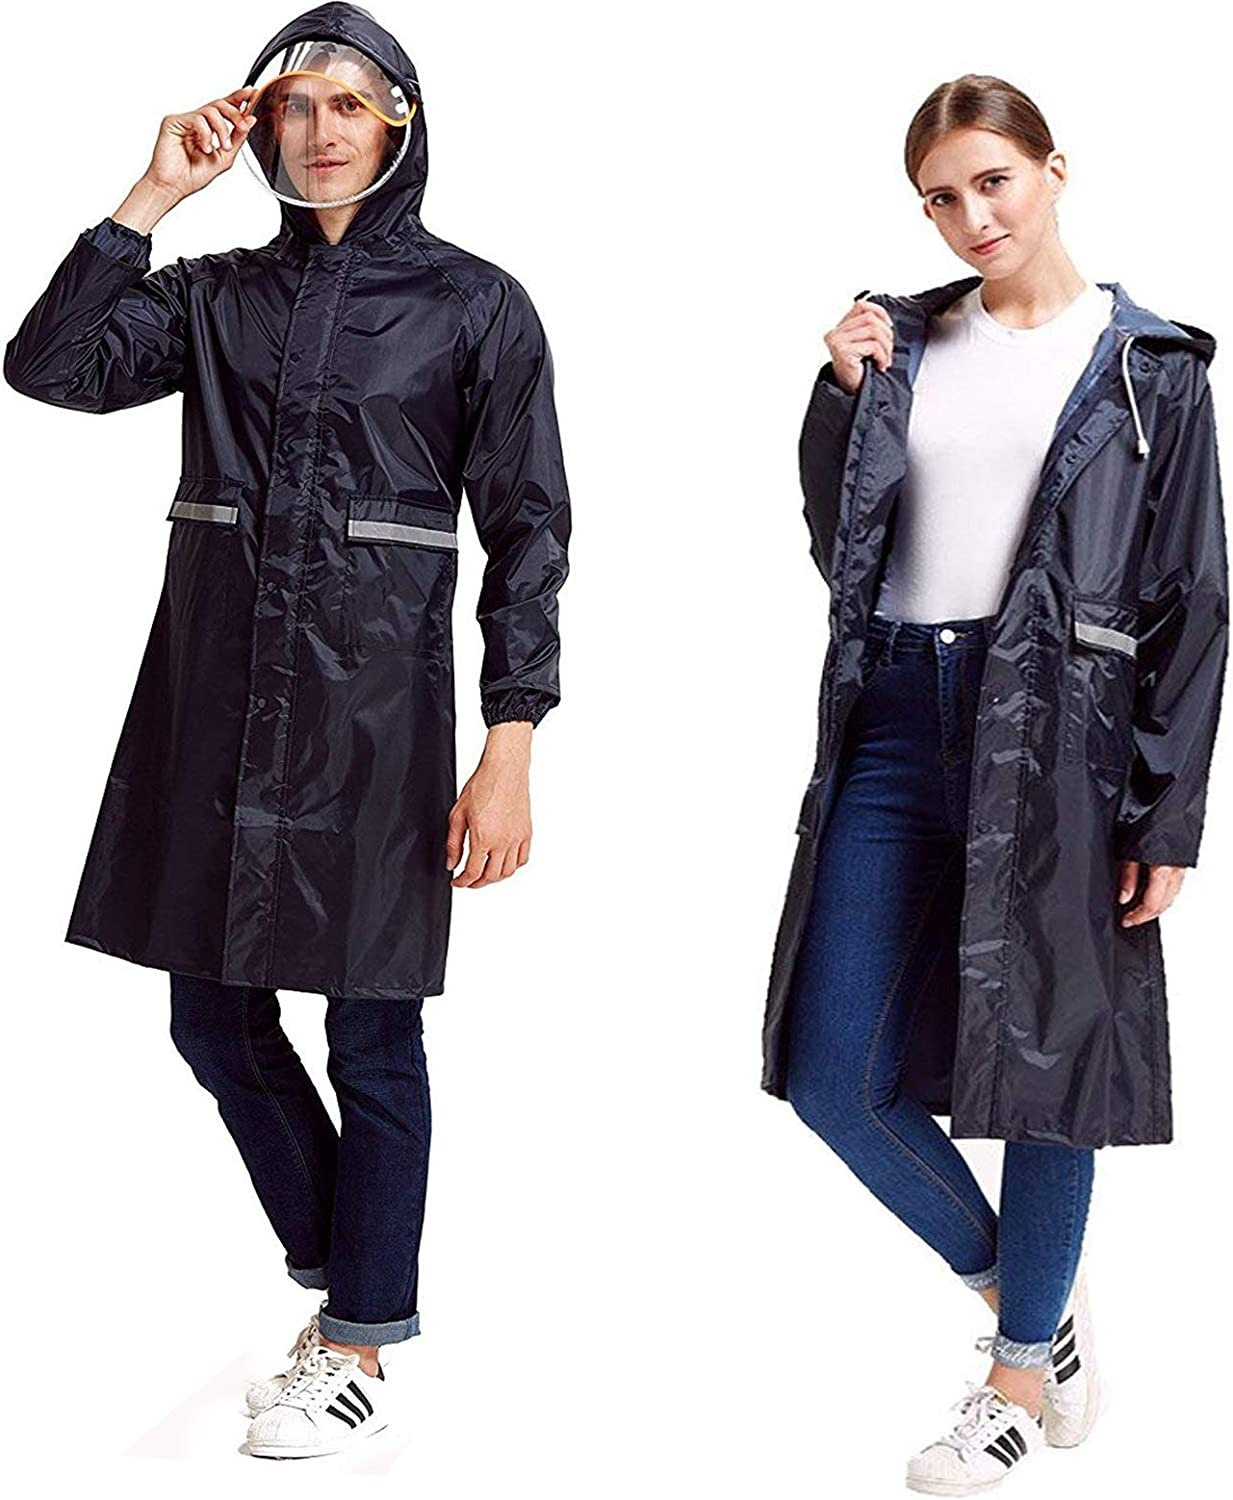 Rain Poncho High Visibility Long Reflective Waterproof Raincoat with Hood for Men Adult Outside Working